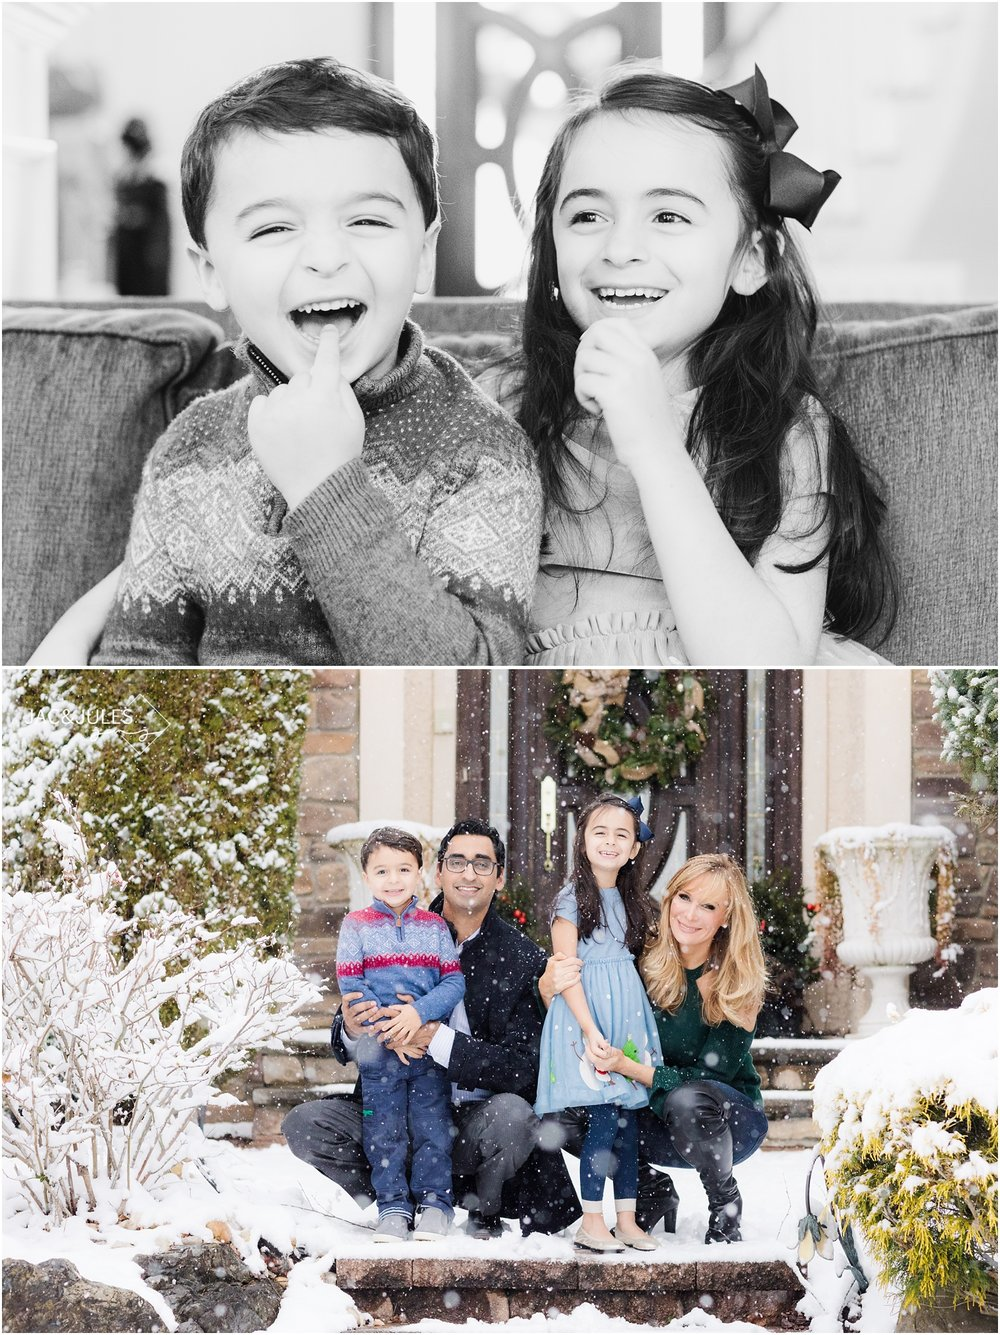 Fun family photos in the snow at home in Marlboro, NJ.